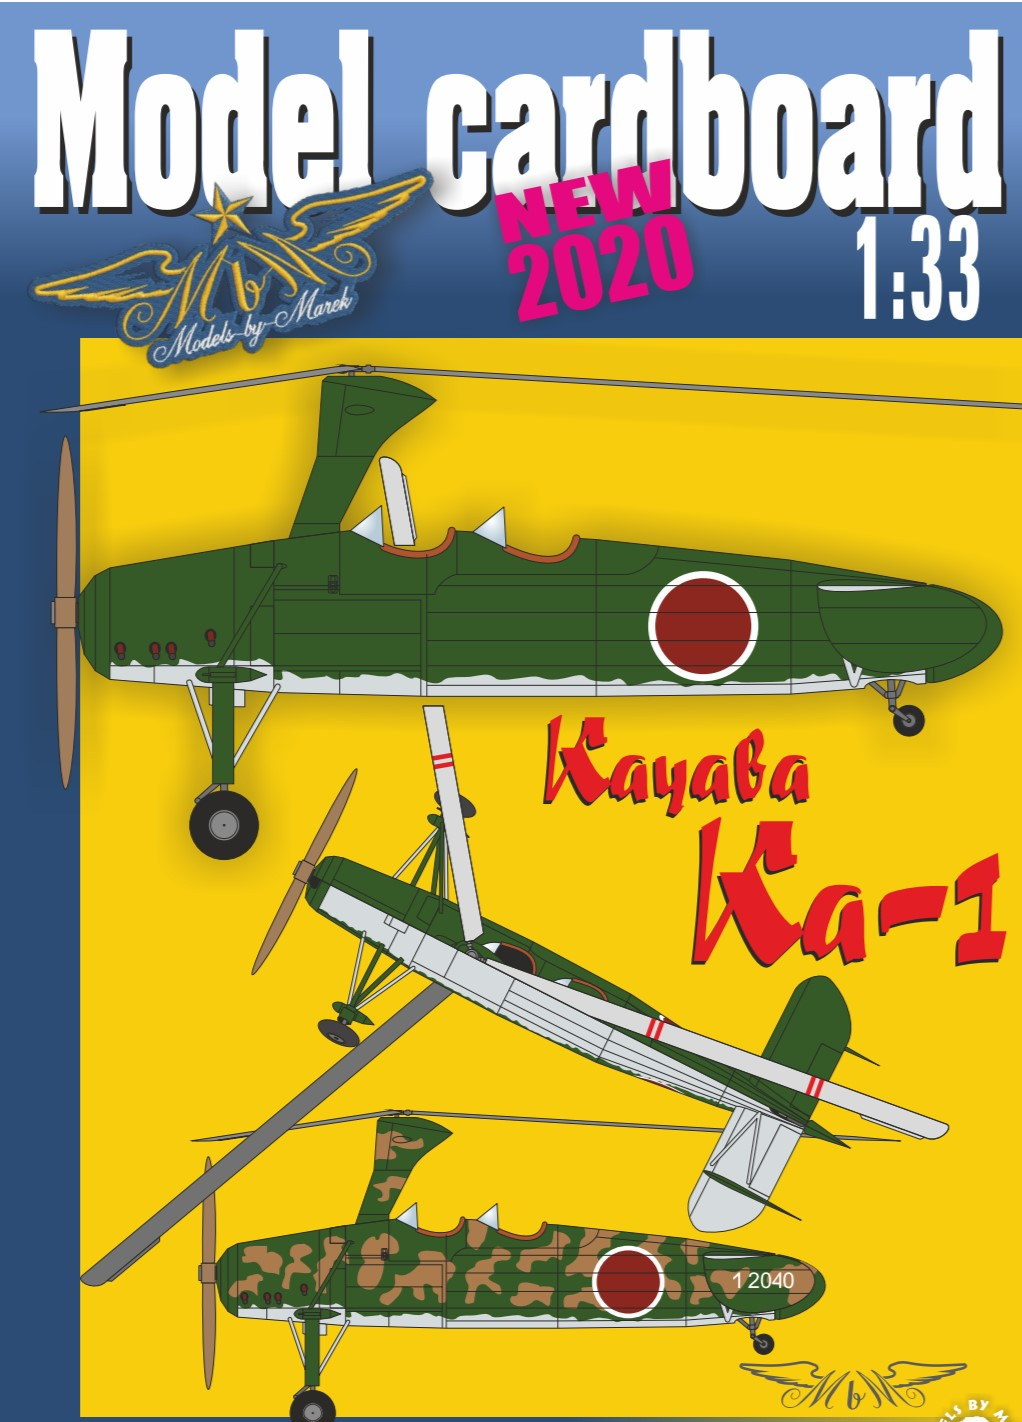 Kayaba Ka-1 (Two models)